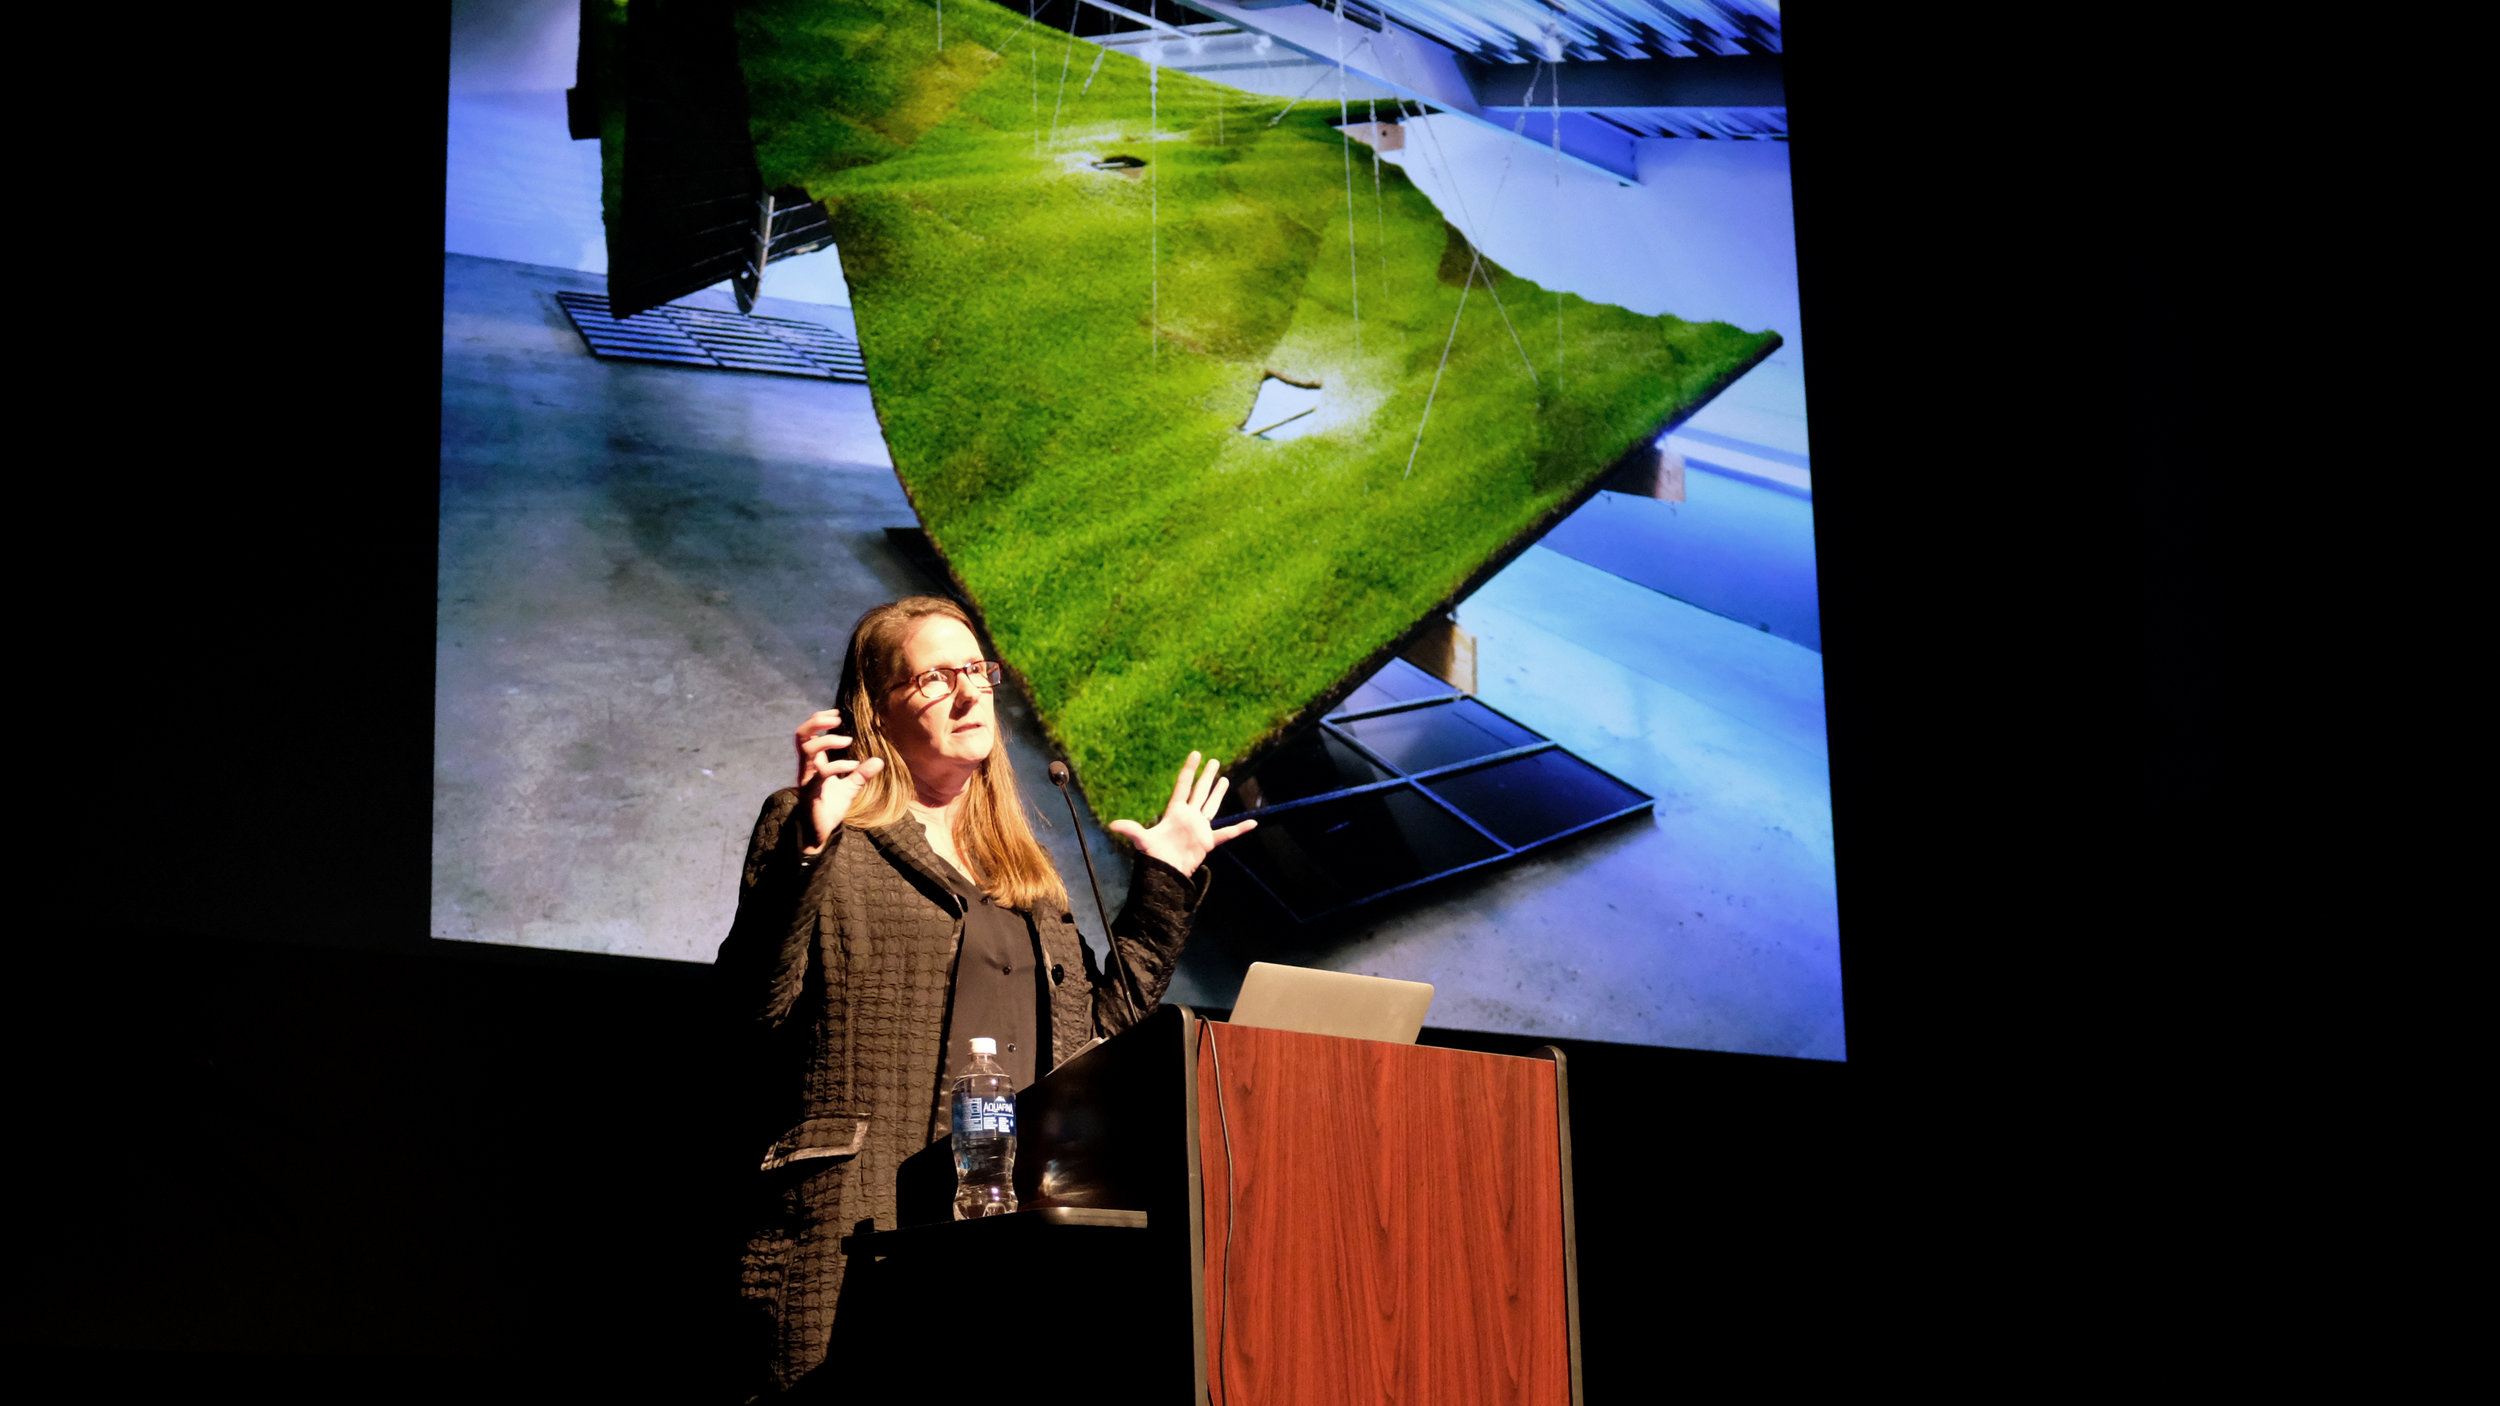 """Margaret Griffin, FAIA, co-founder and principal of Griffin Enright Architects, visited Carnegie Mellon University School of Architecture to deliver her talk """"Towards a New Authenticity"""" on Monday 5 February 2018. Photo by Christina Brown."""